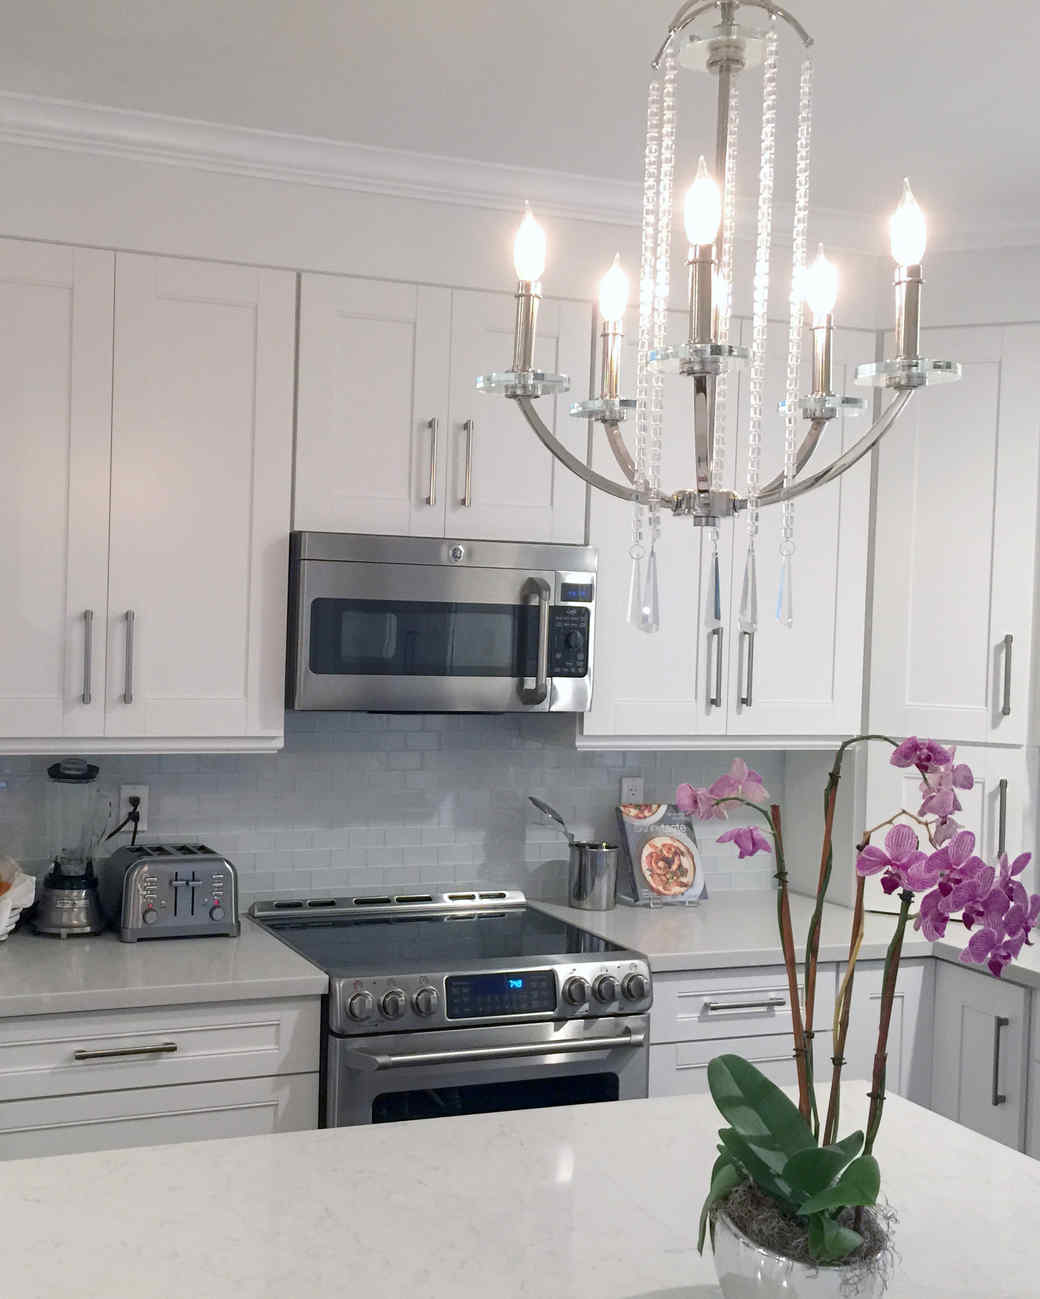 Small Kitchen Lighting Tips: 6 Bright Kitchen Lighting Ideas: See How New Fixtures